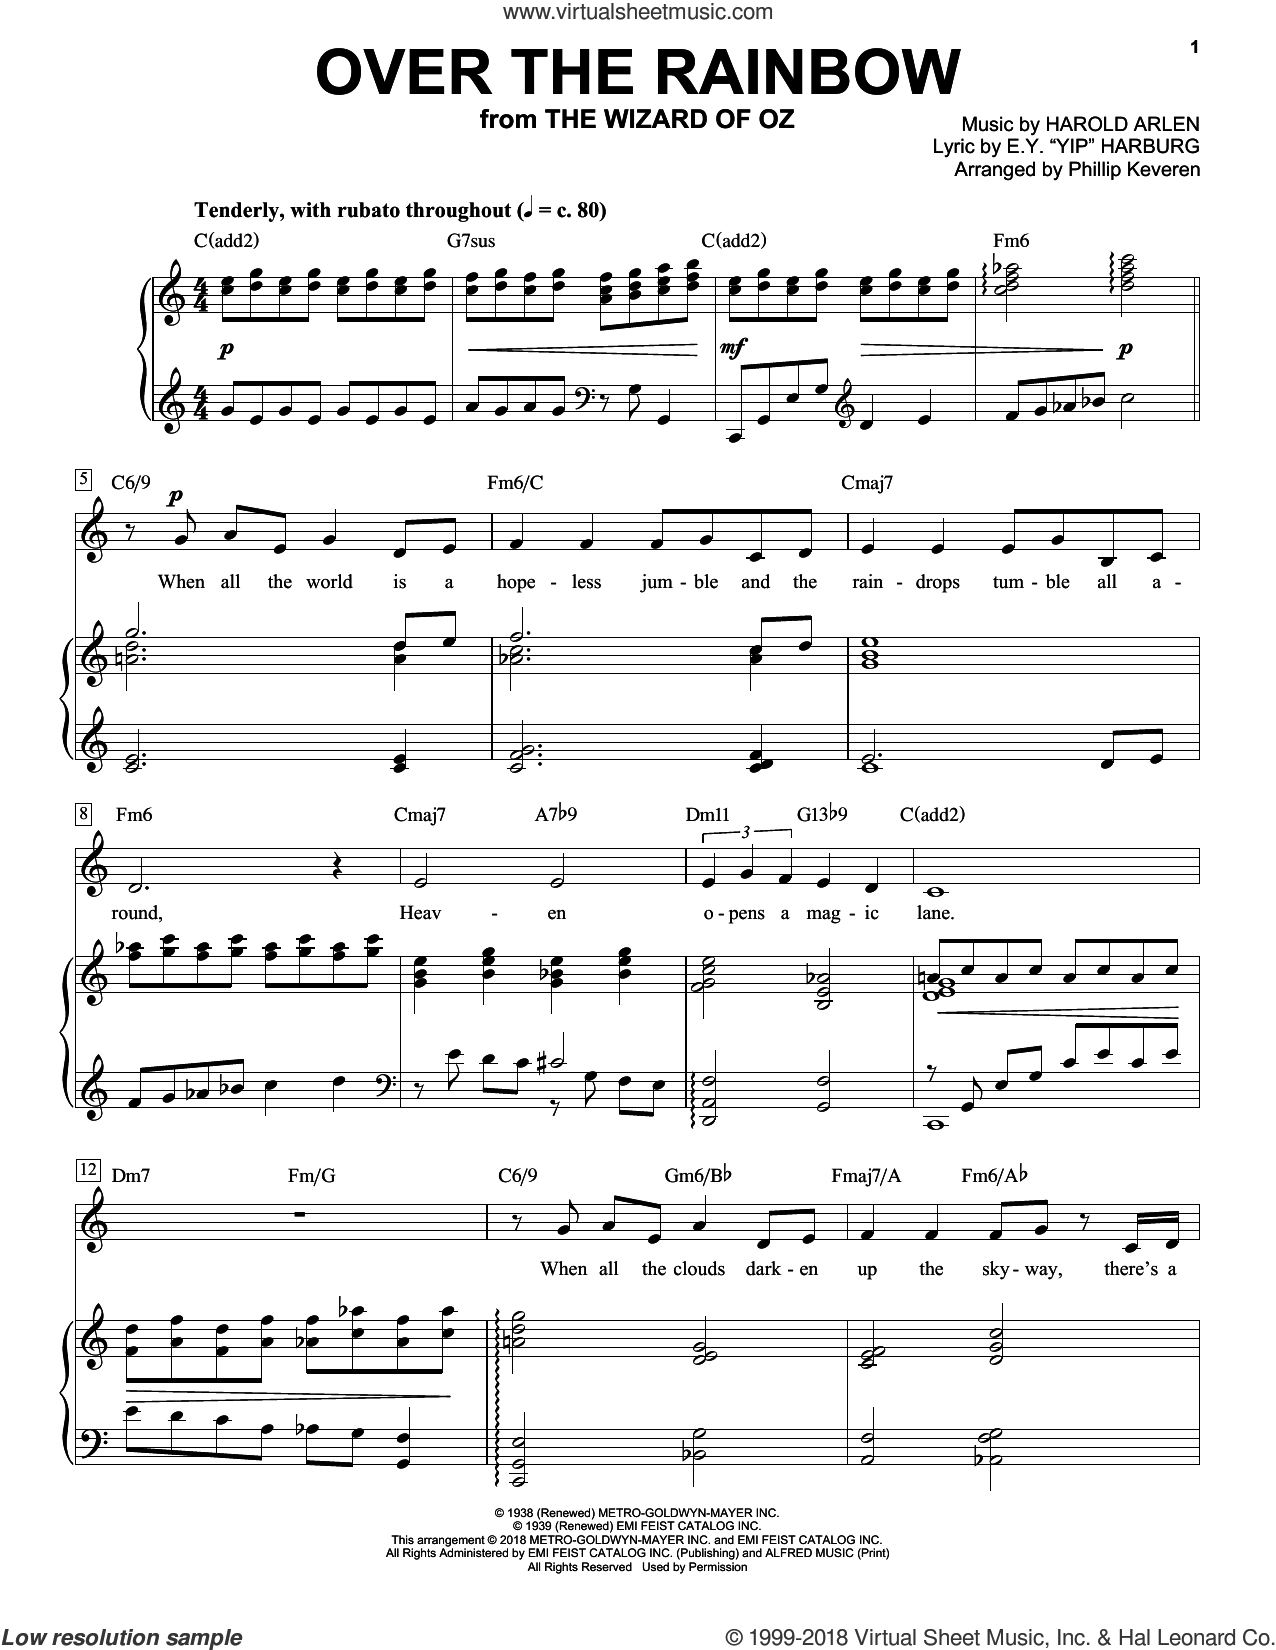 Over The Rainbow (arr. Phillip Keveren) sheet music for voice and piano by Harold Arlen, Phillip Keveren and E.Y. Harburg, intermediate skill level